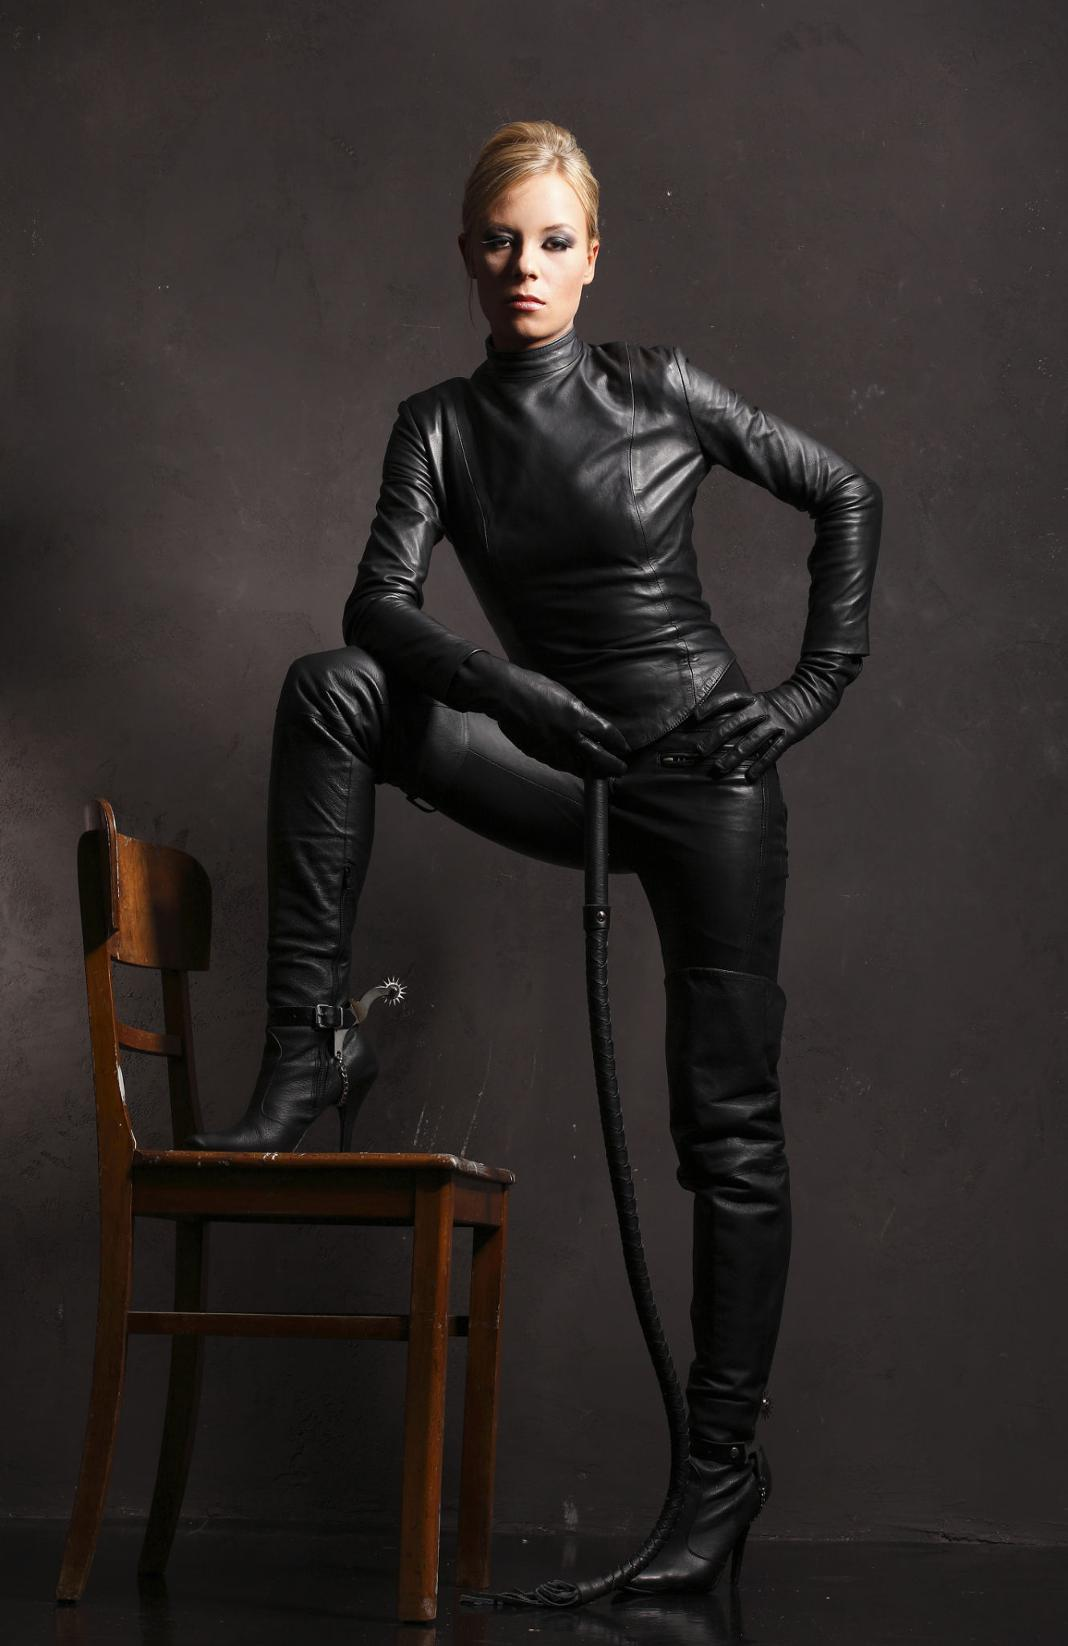 Women Wearing Tight Leather Boots 95